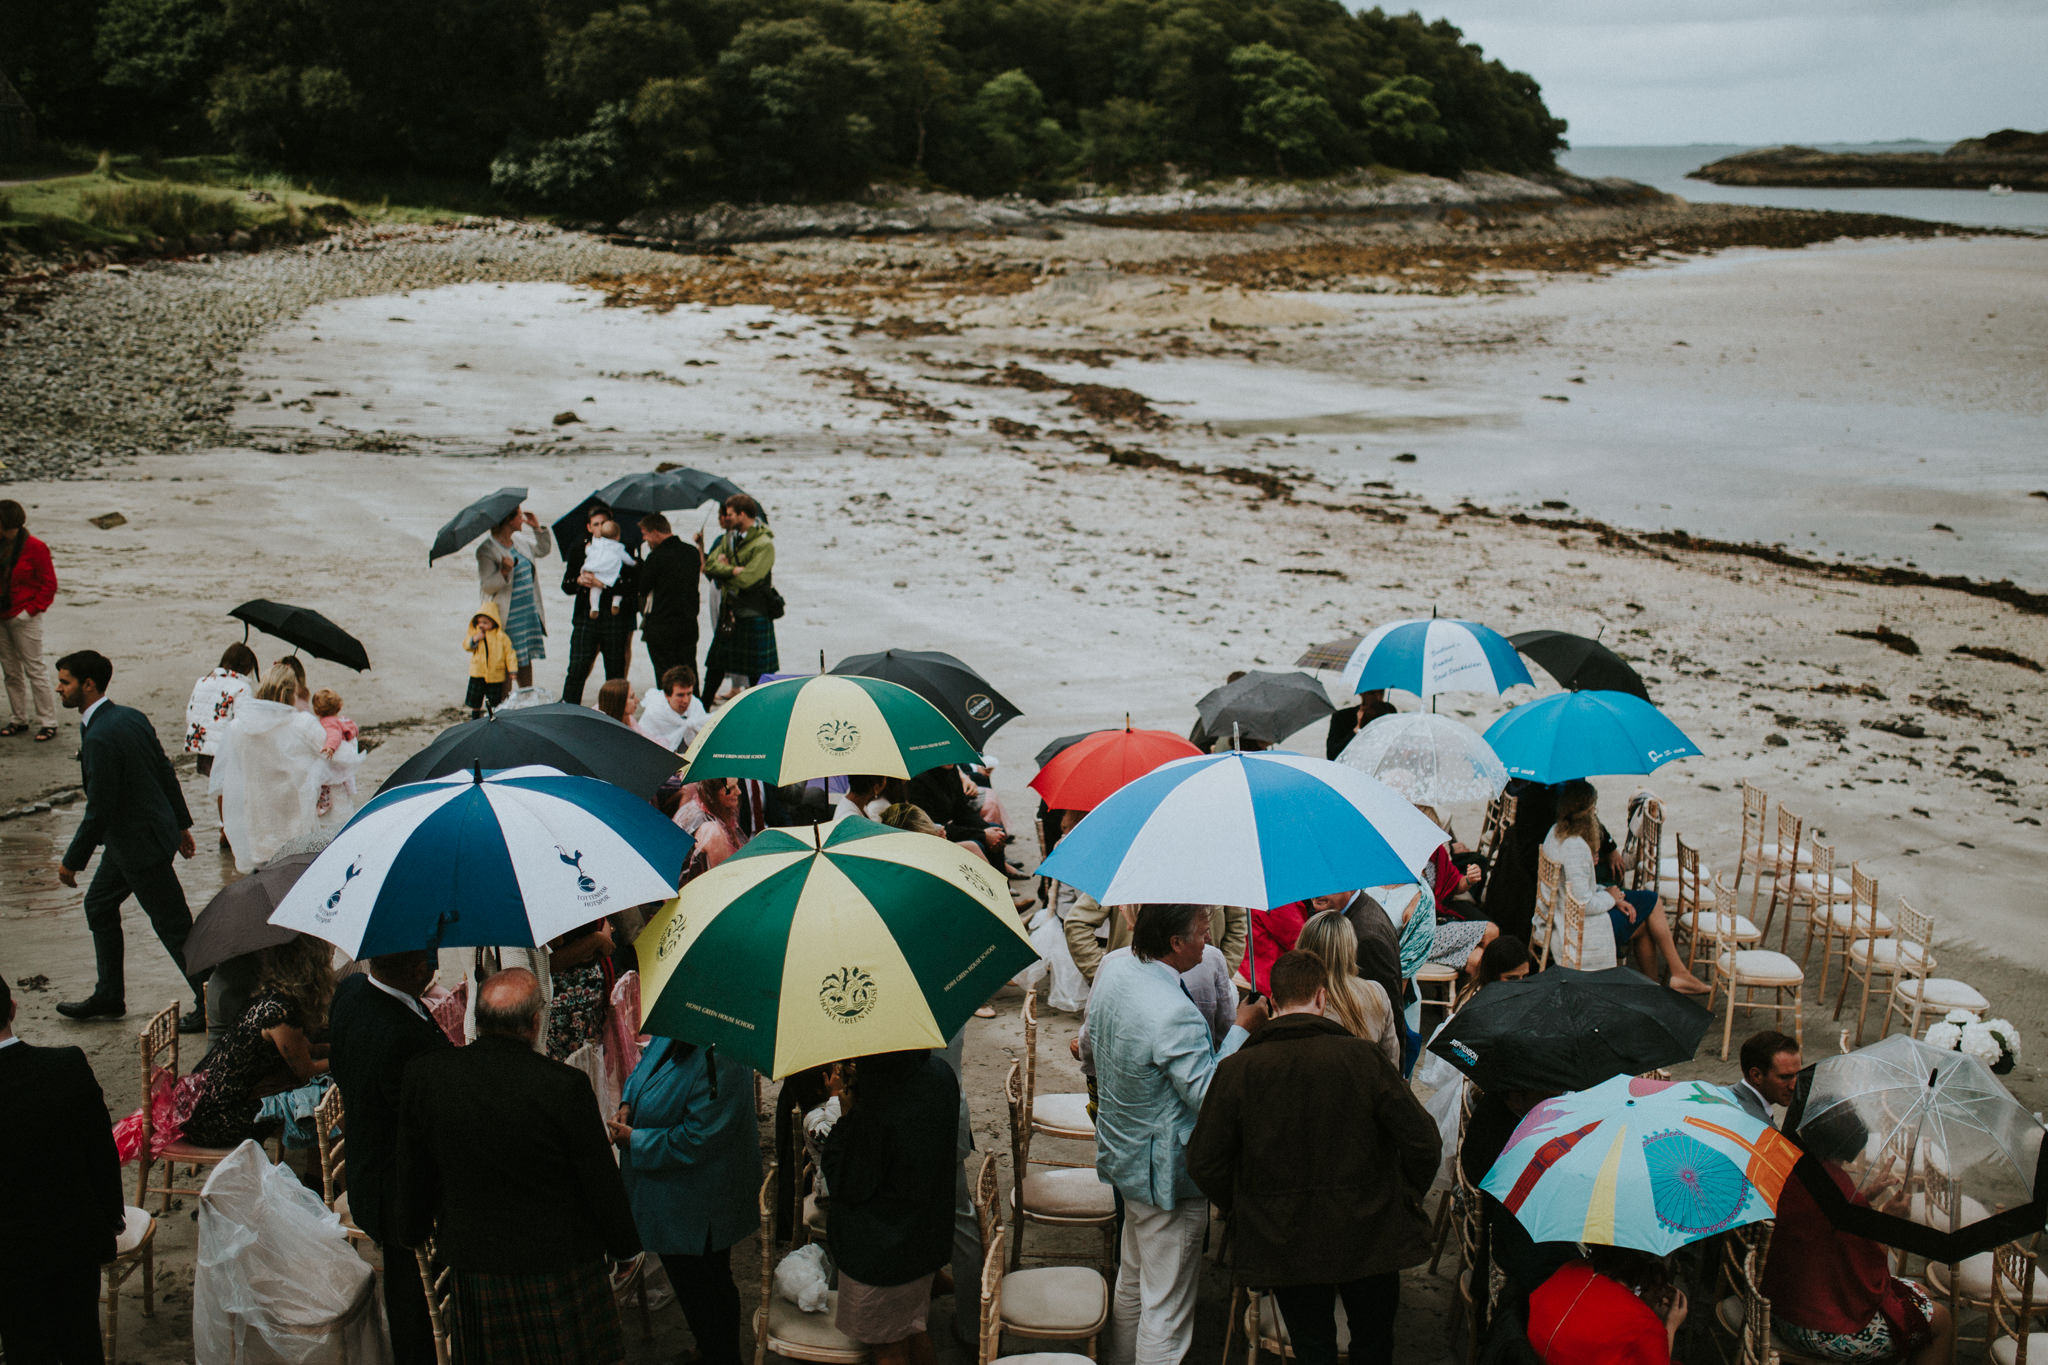 The wedding guests are standing at the beach and holding umbrellas.